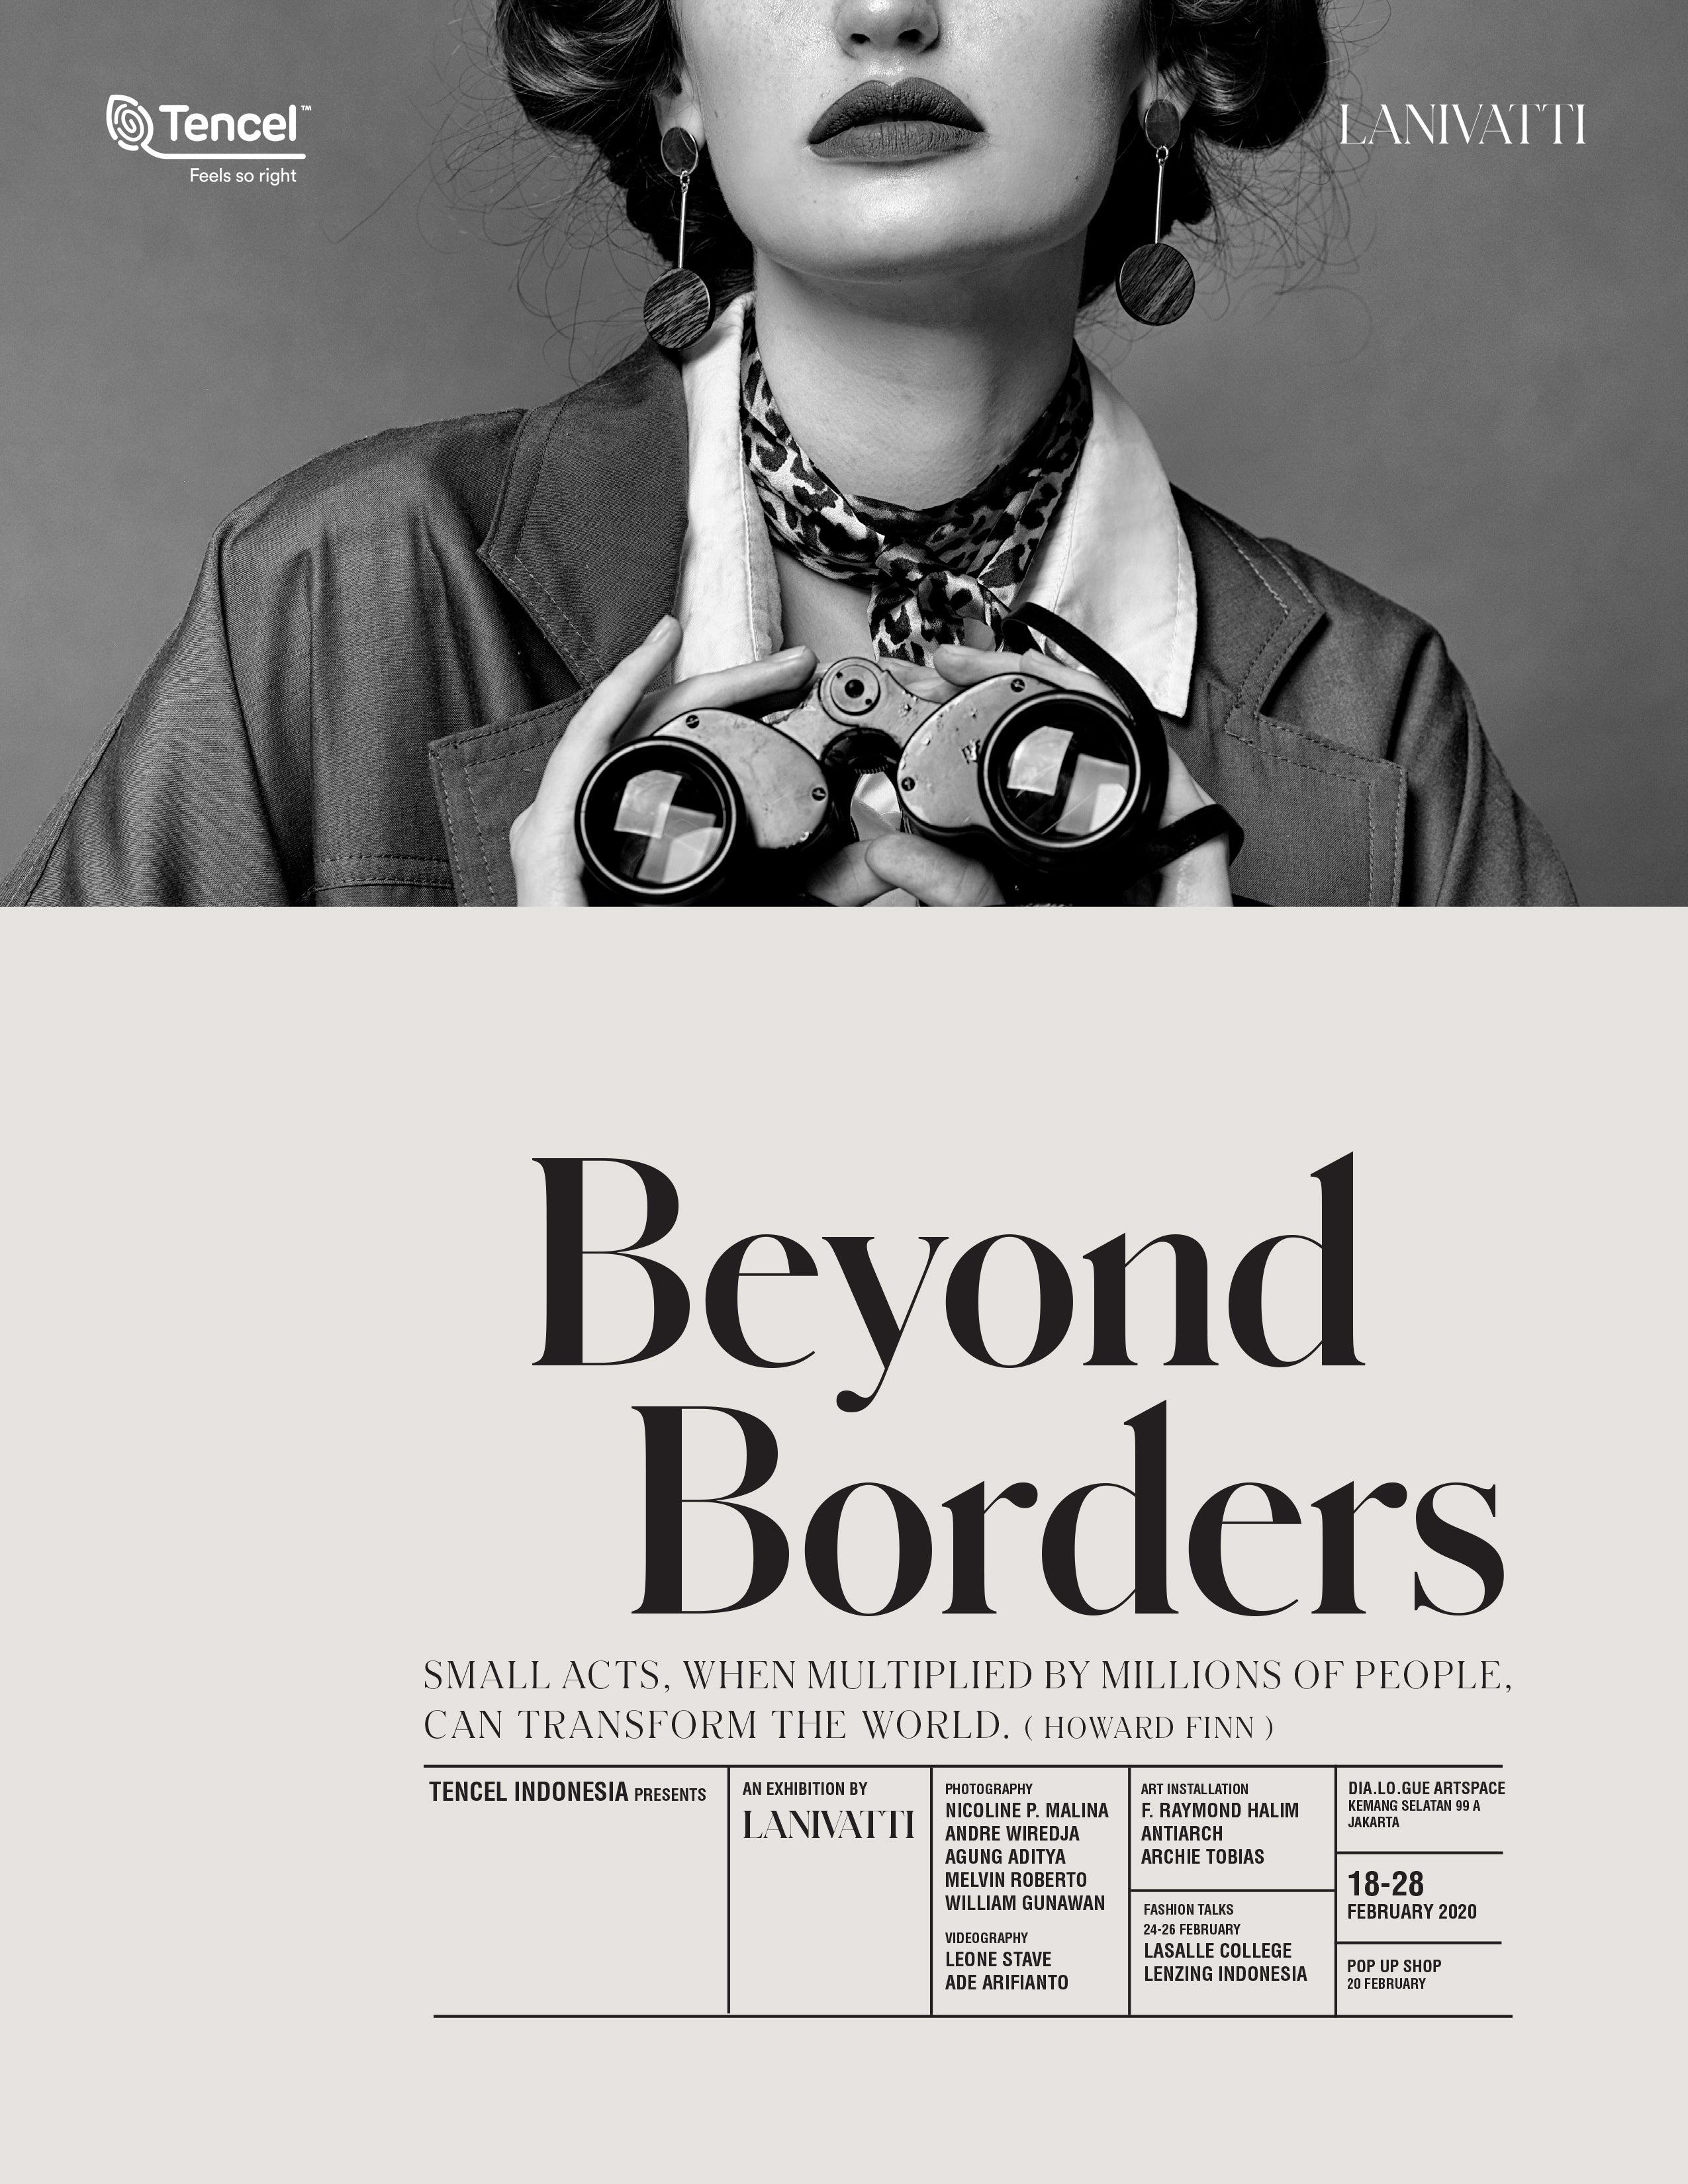 Beyond Borders: The Exhibition